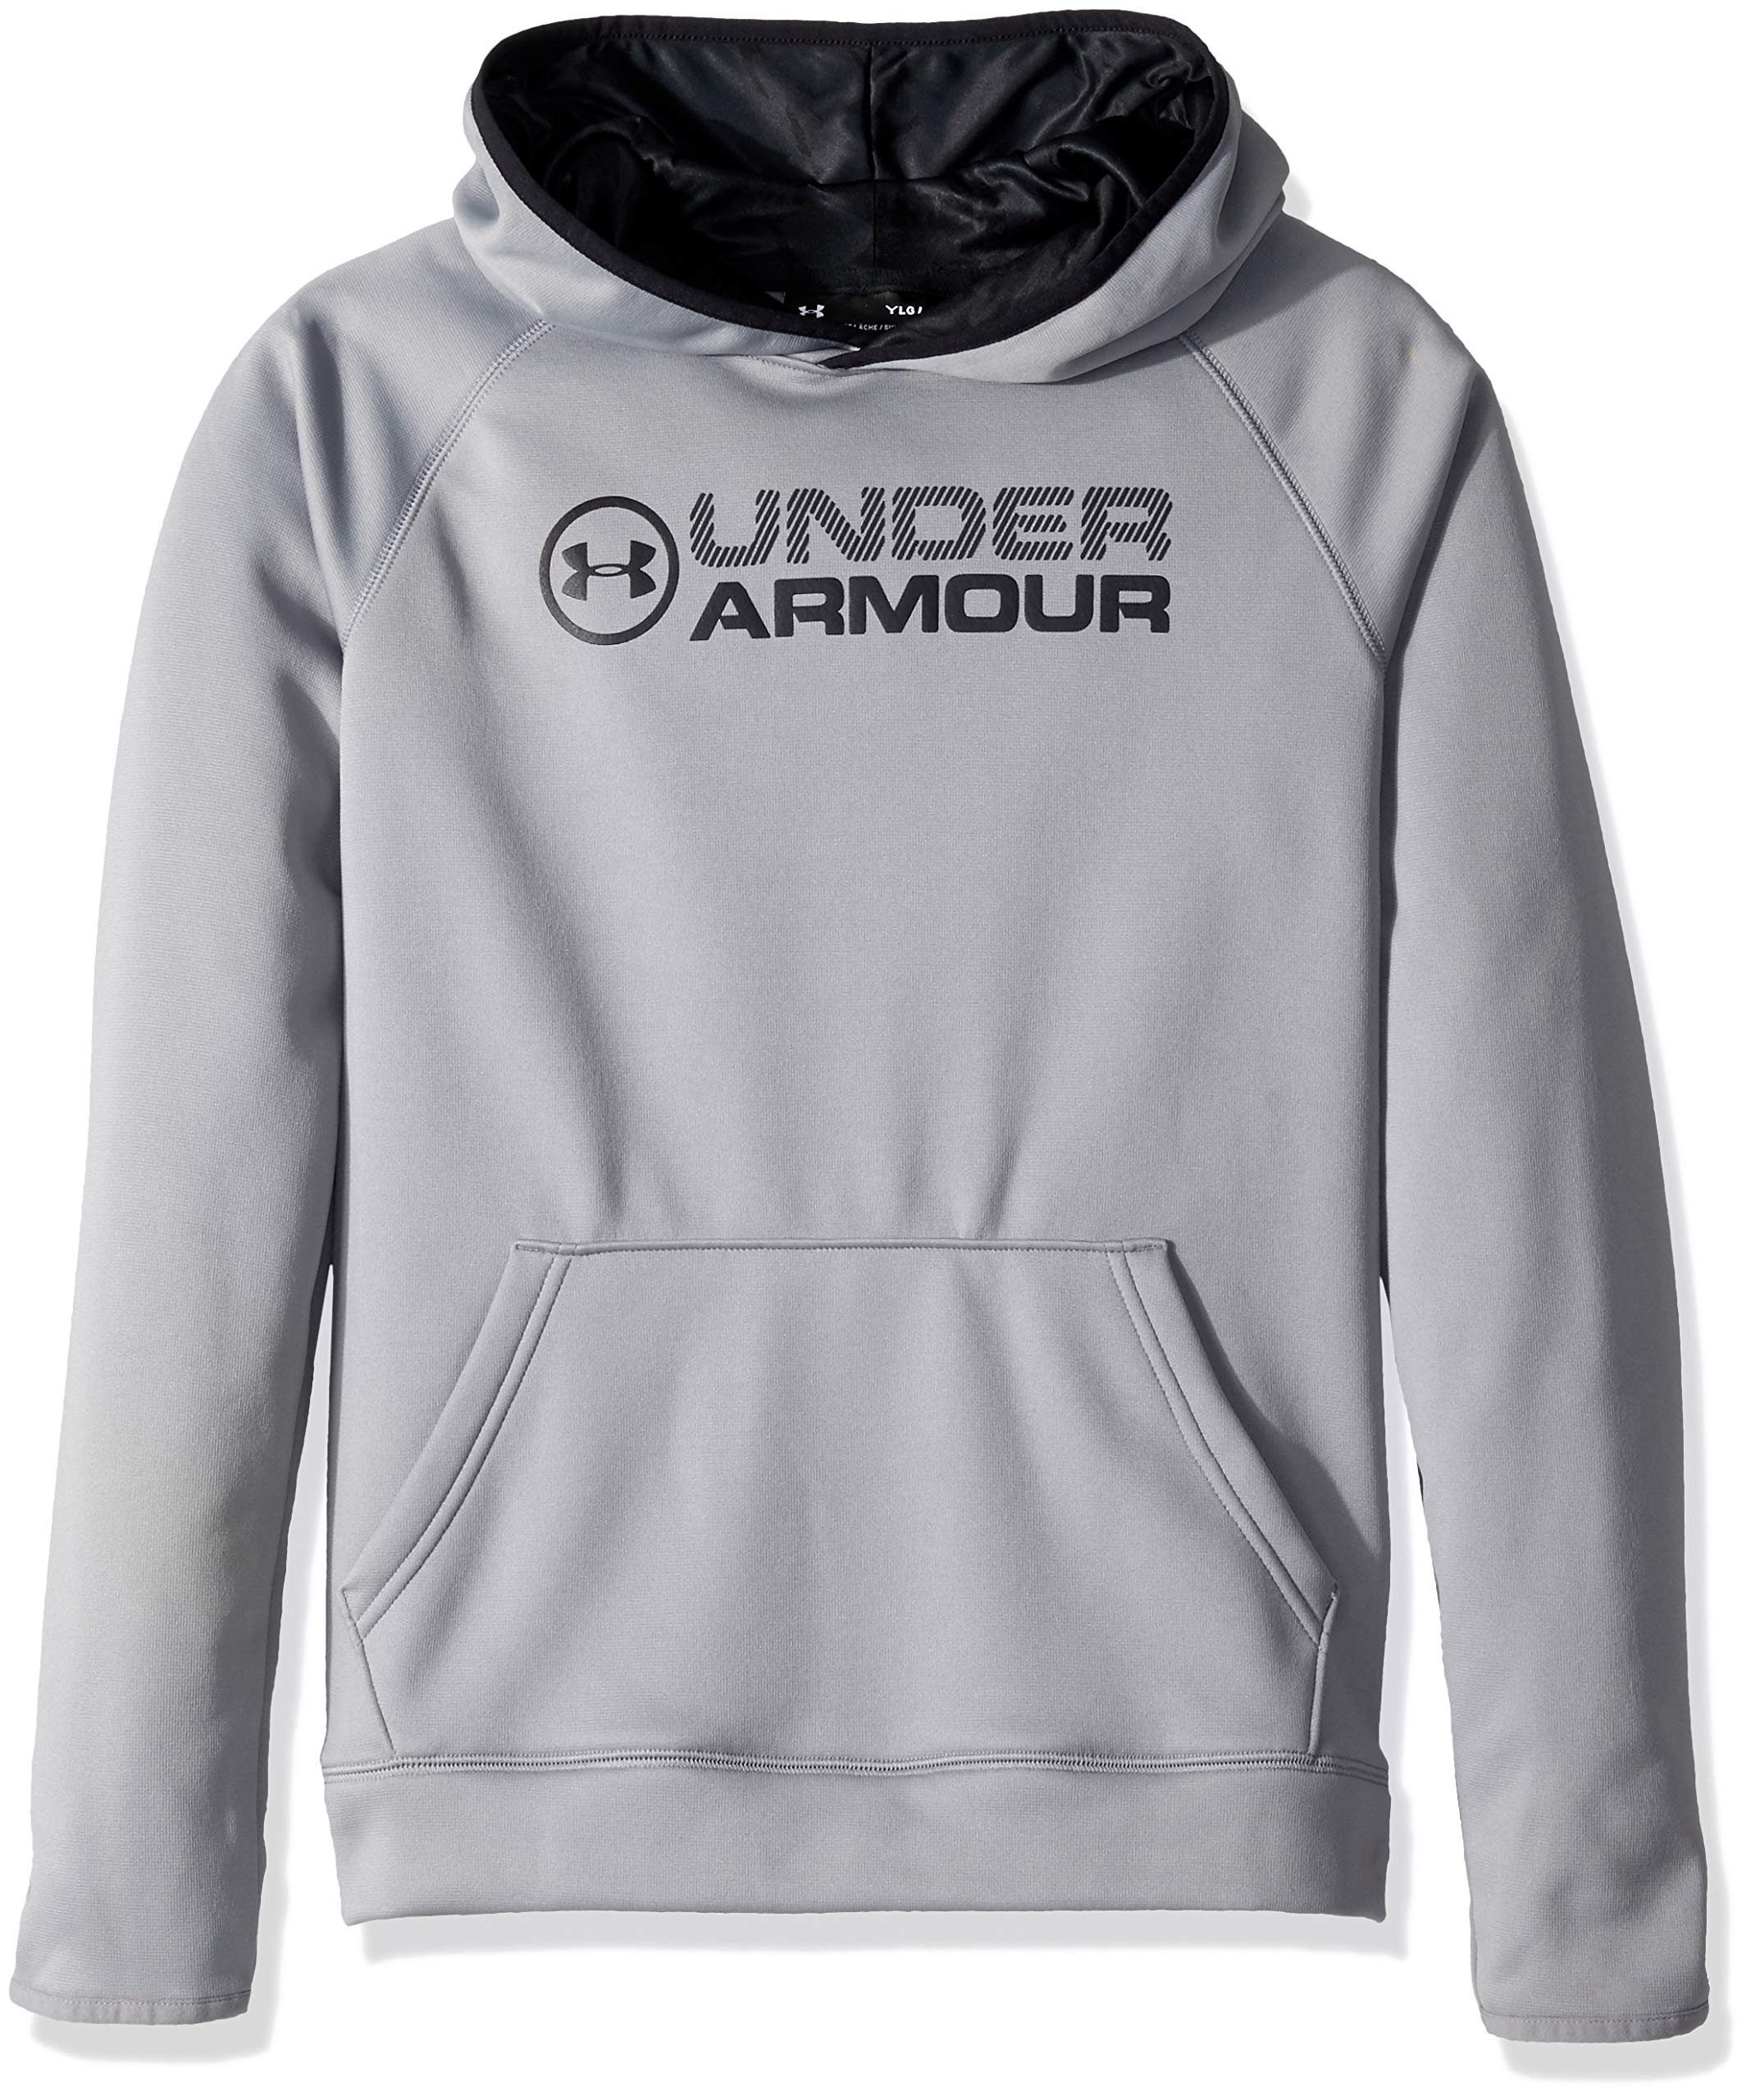 Under Armour Boys Fleece Stacked Hoodie, Steel (035)/Black, Youth Large by Under Armour